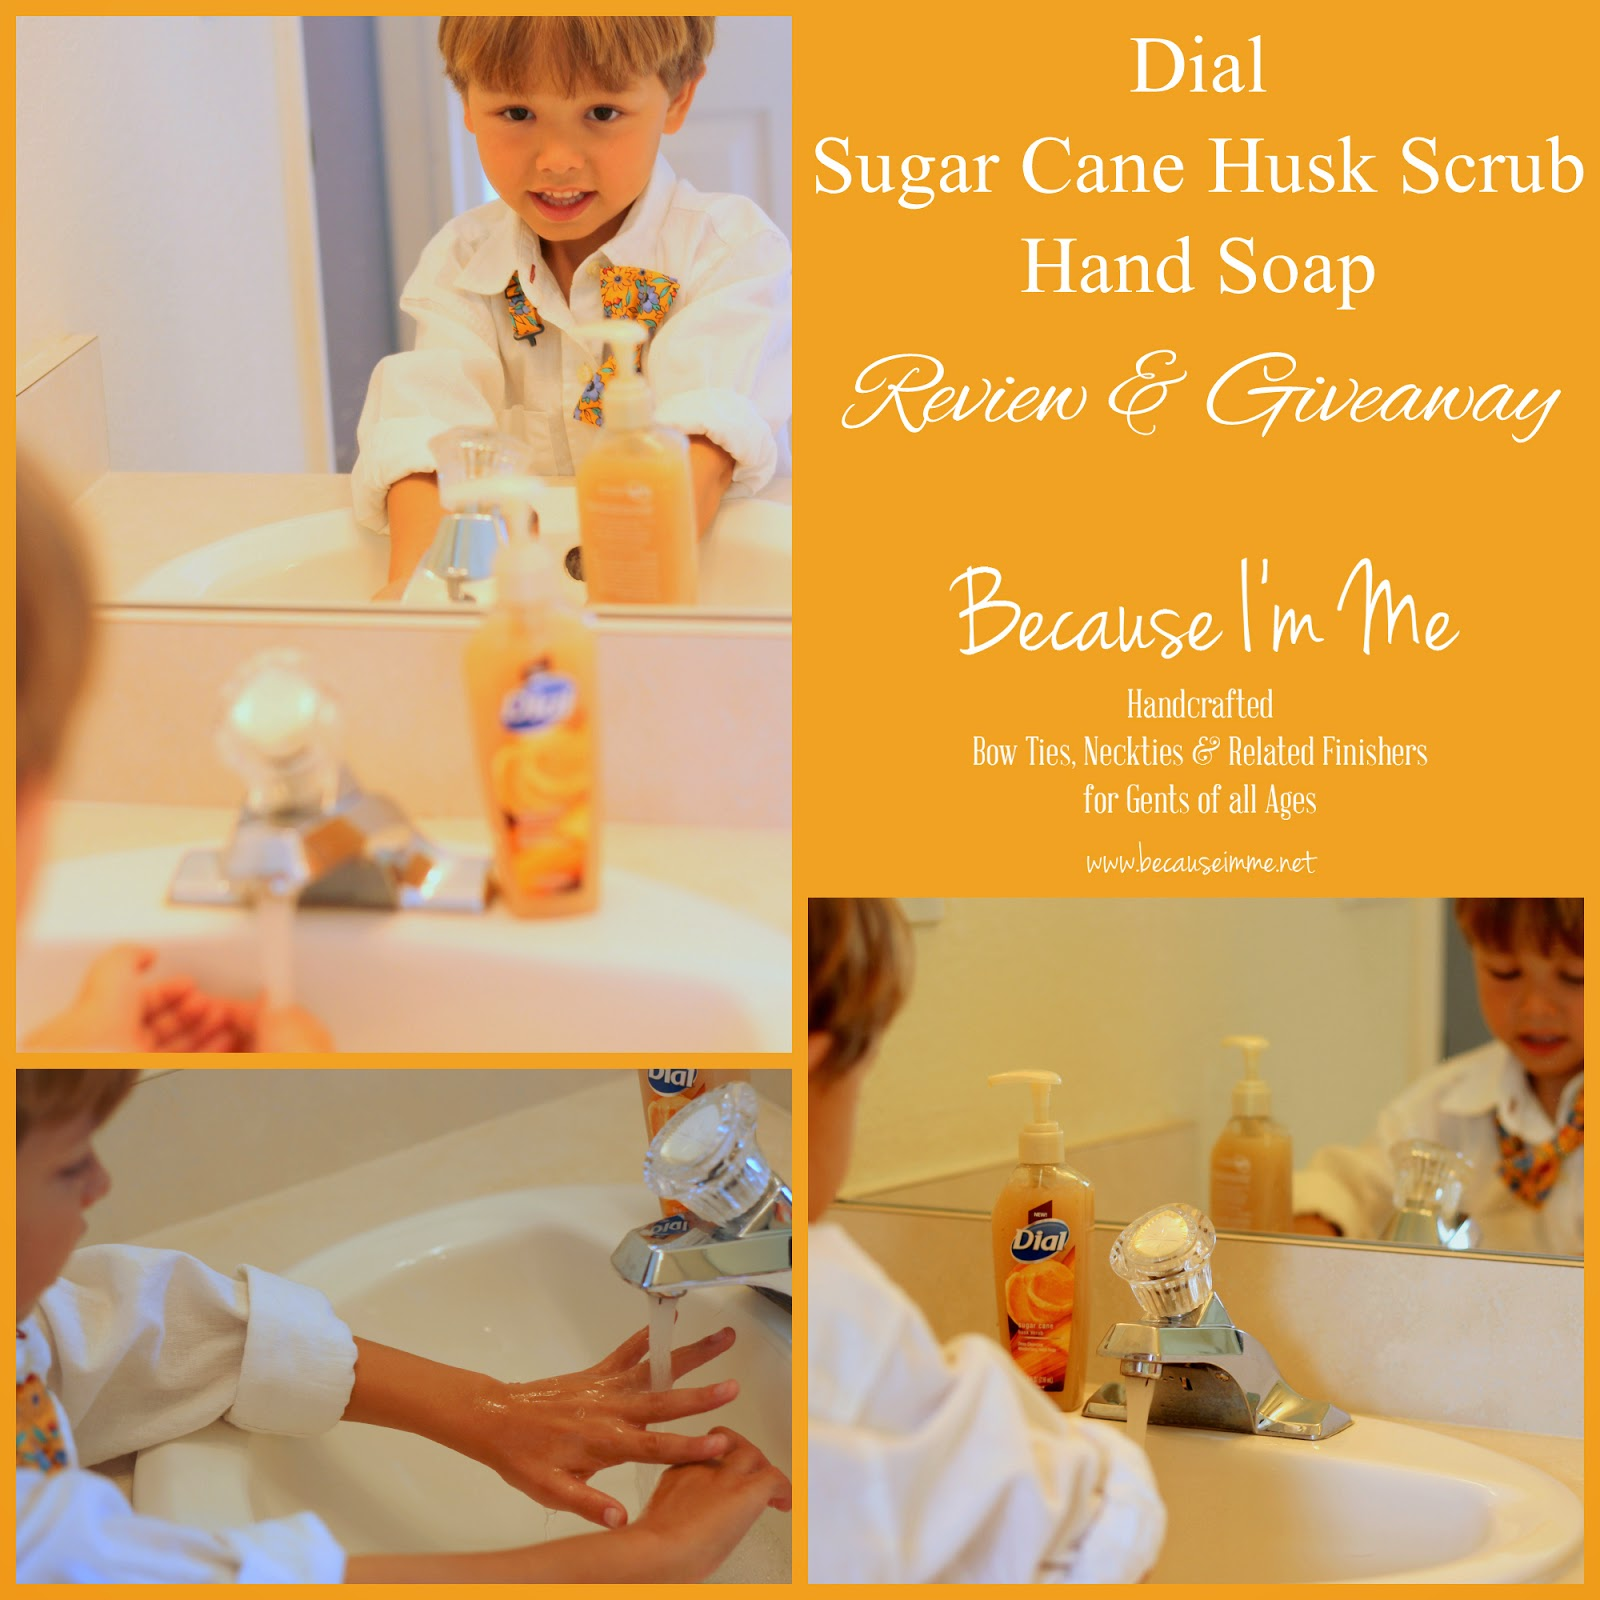 Check out New Dial Sugar Cane Husk Scrub Hand Soap at Because I'm Me